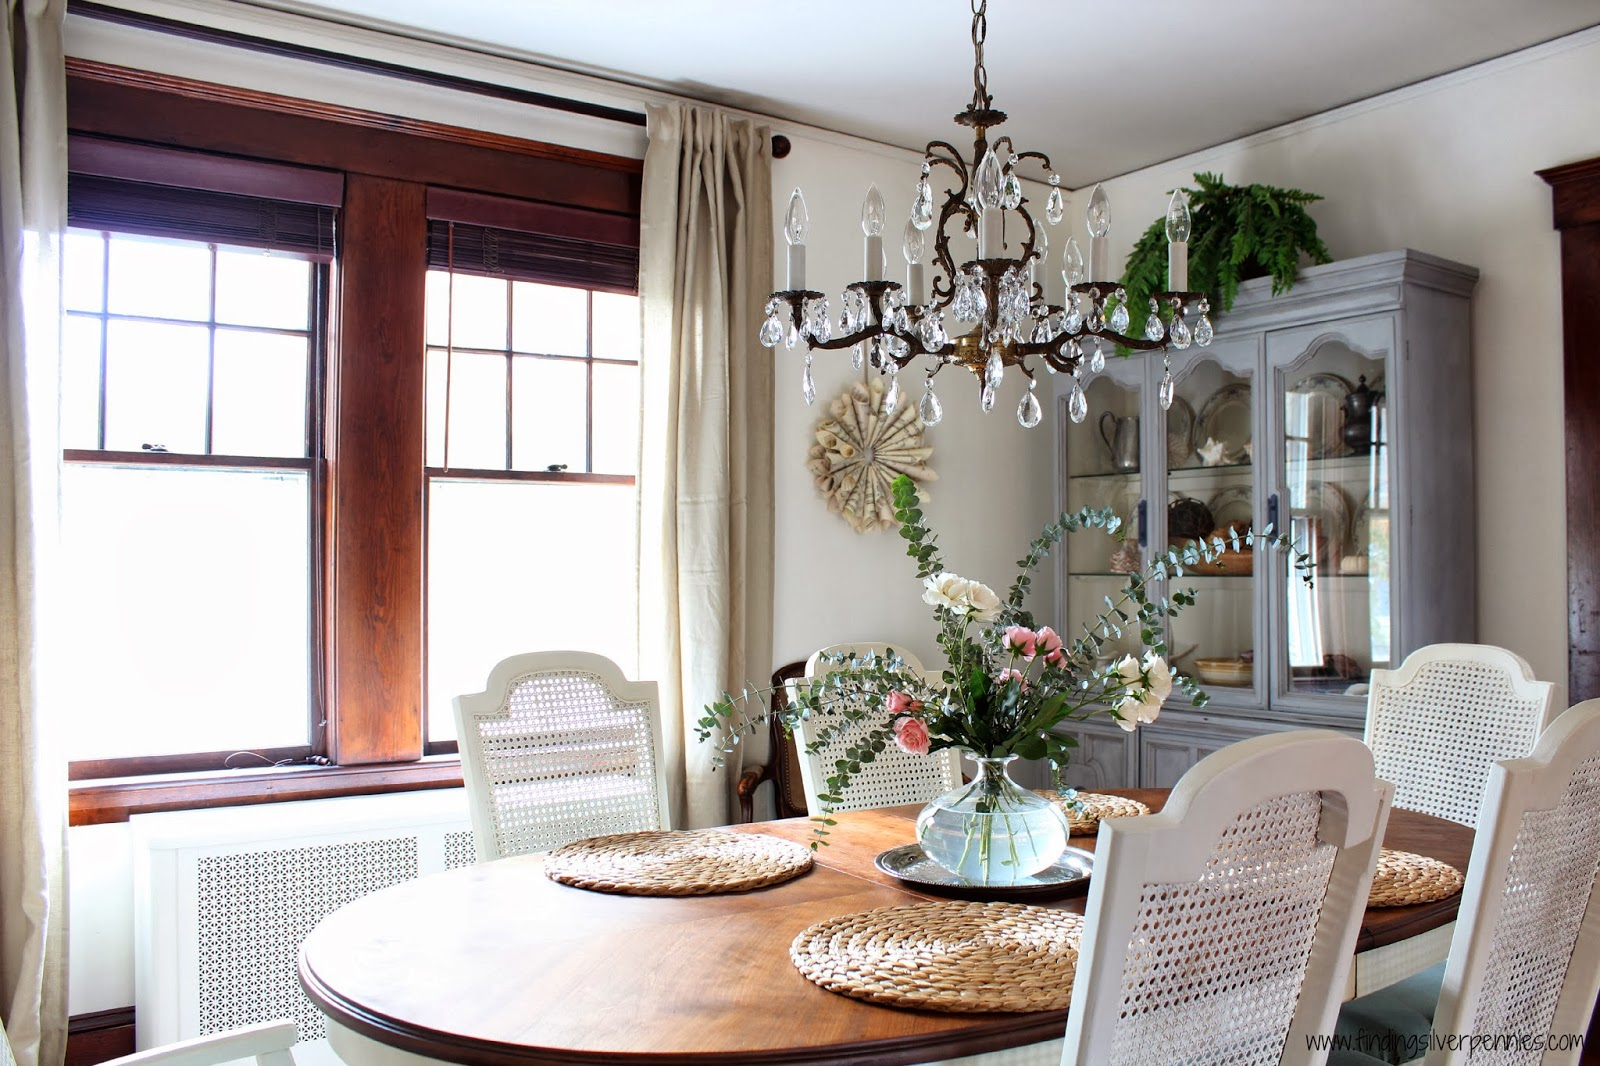 Dining Room Reveal - Designing on a Dime - Finding Silver Pennies